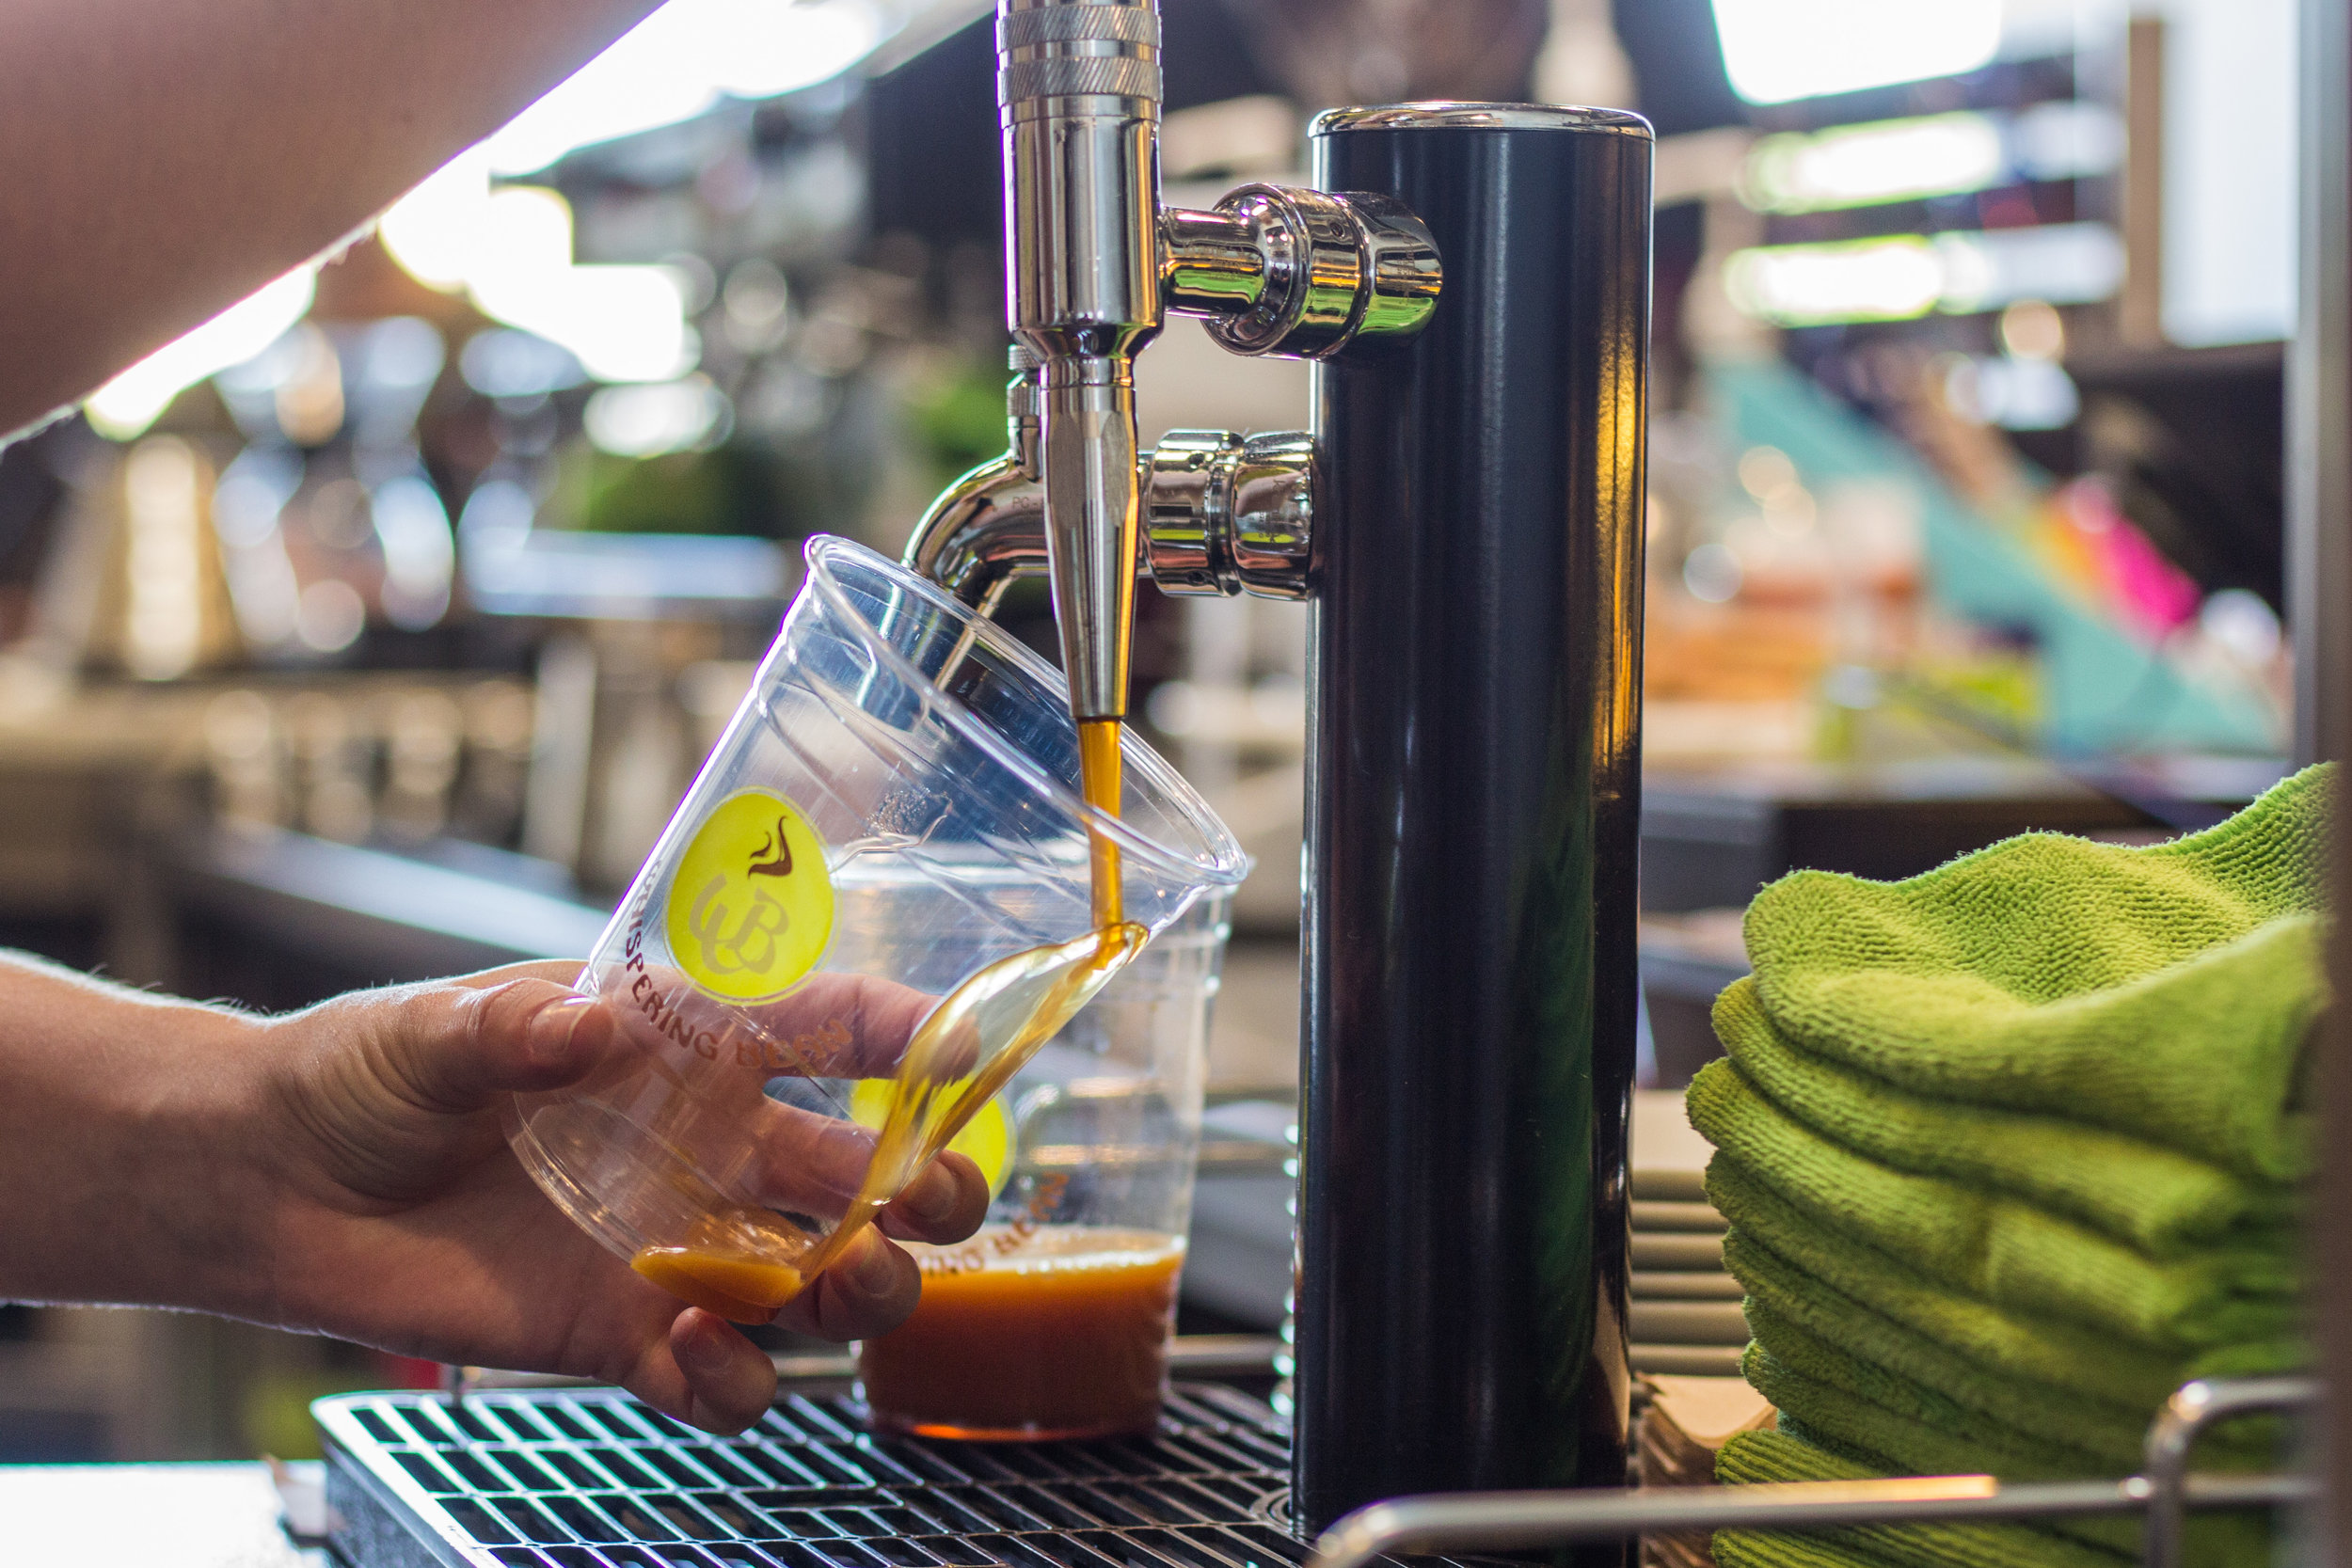 Drinks - A full line of espresso based drinks, pour-over, frozen drinks, cold brew and nitro brew make for a wide variety of coffee drinks.